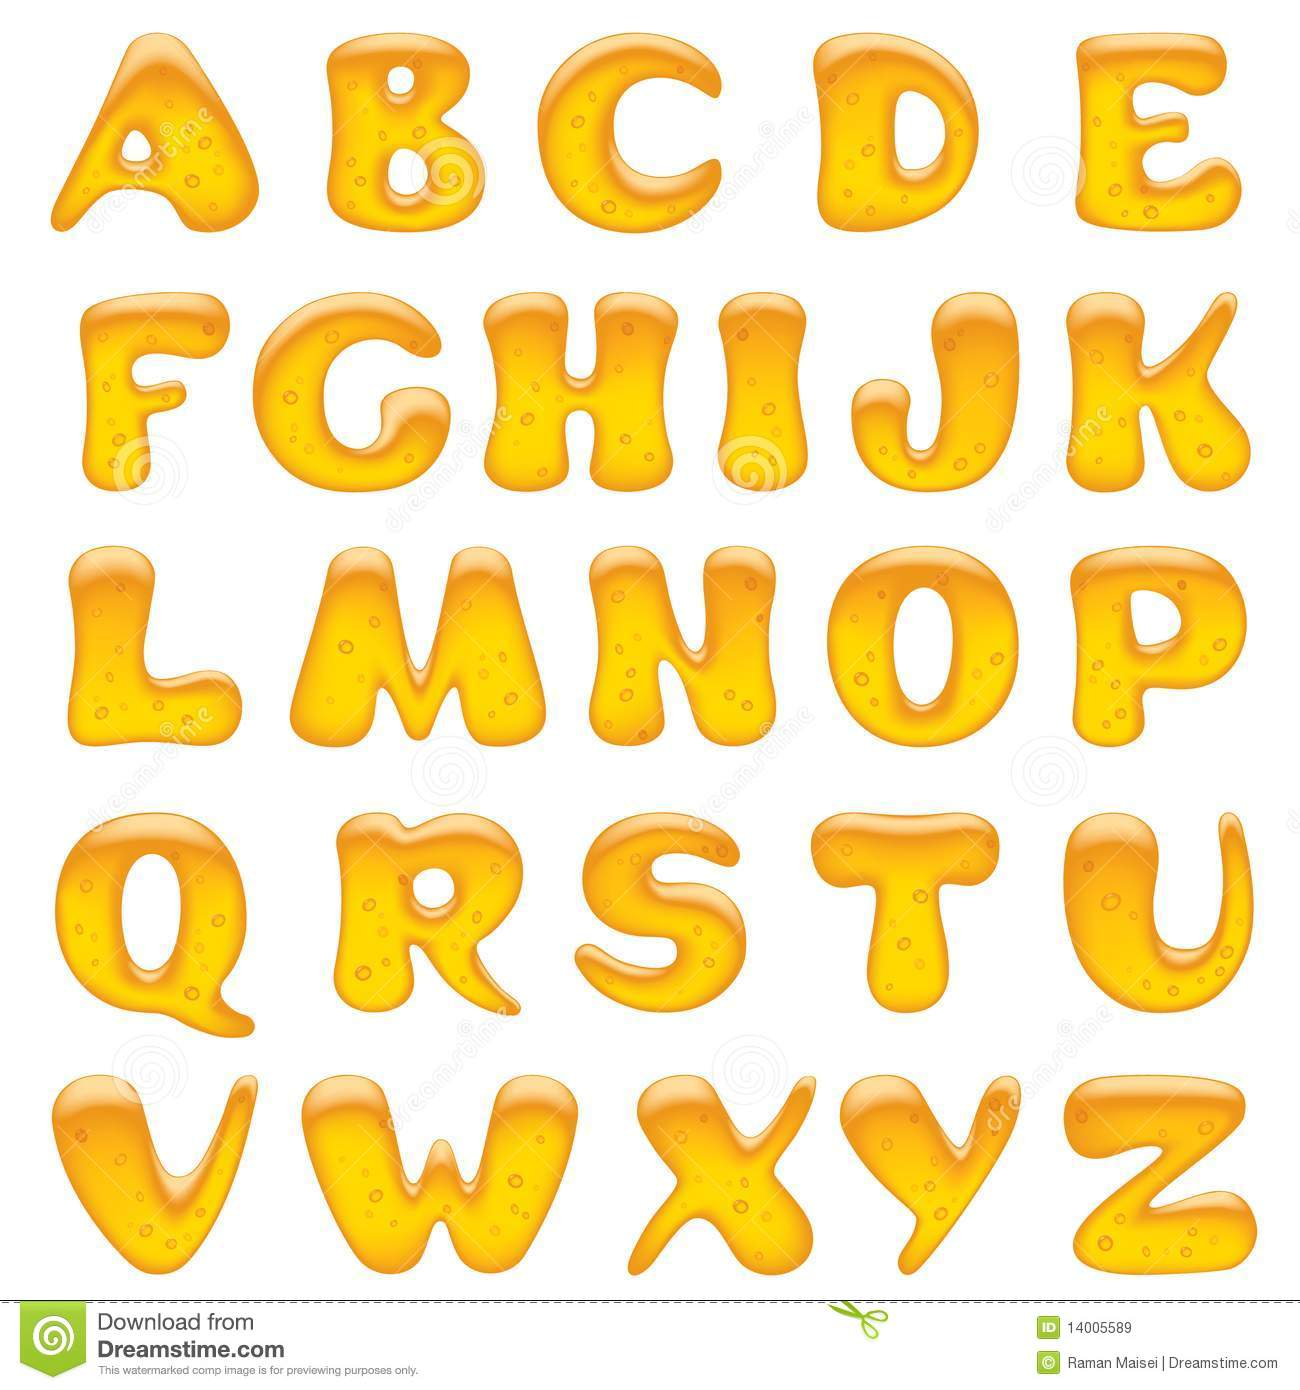 Worksheets Alphabet Letters alphabet letters stock photos images pictures 54037 royalty free images